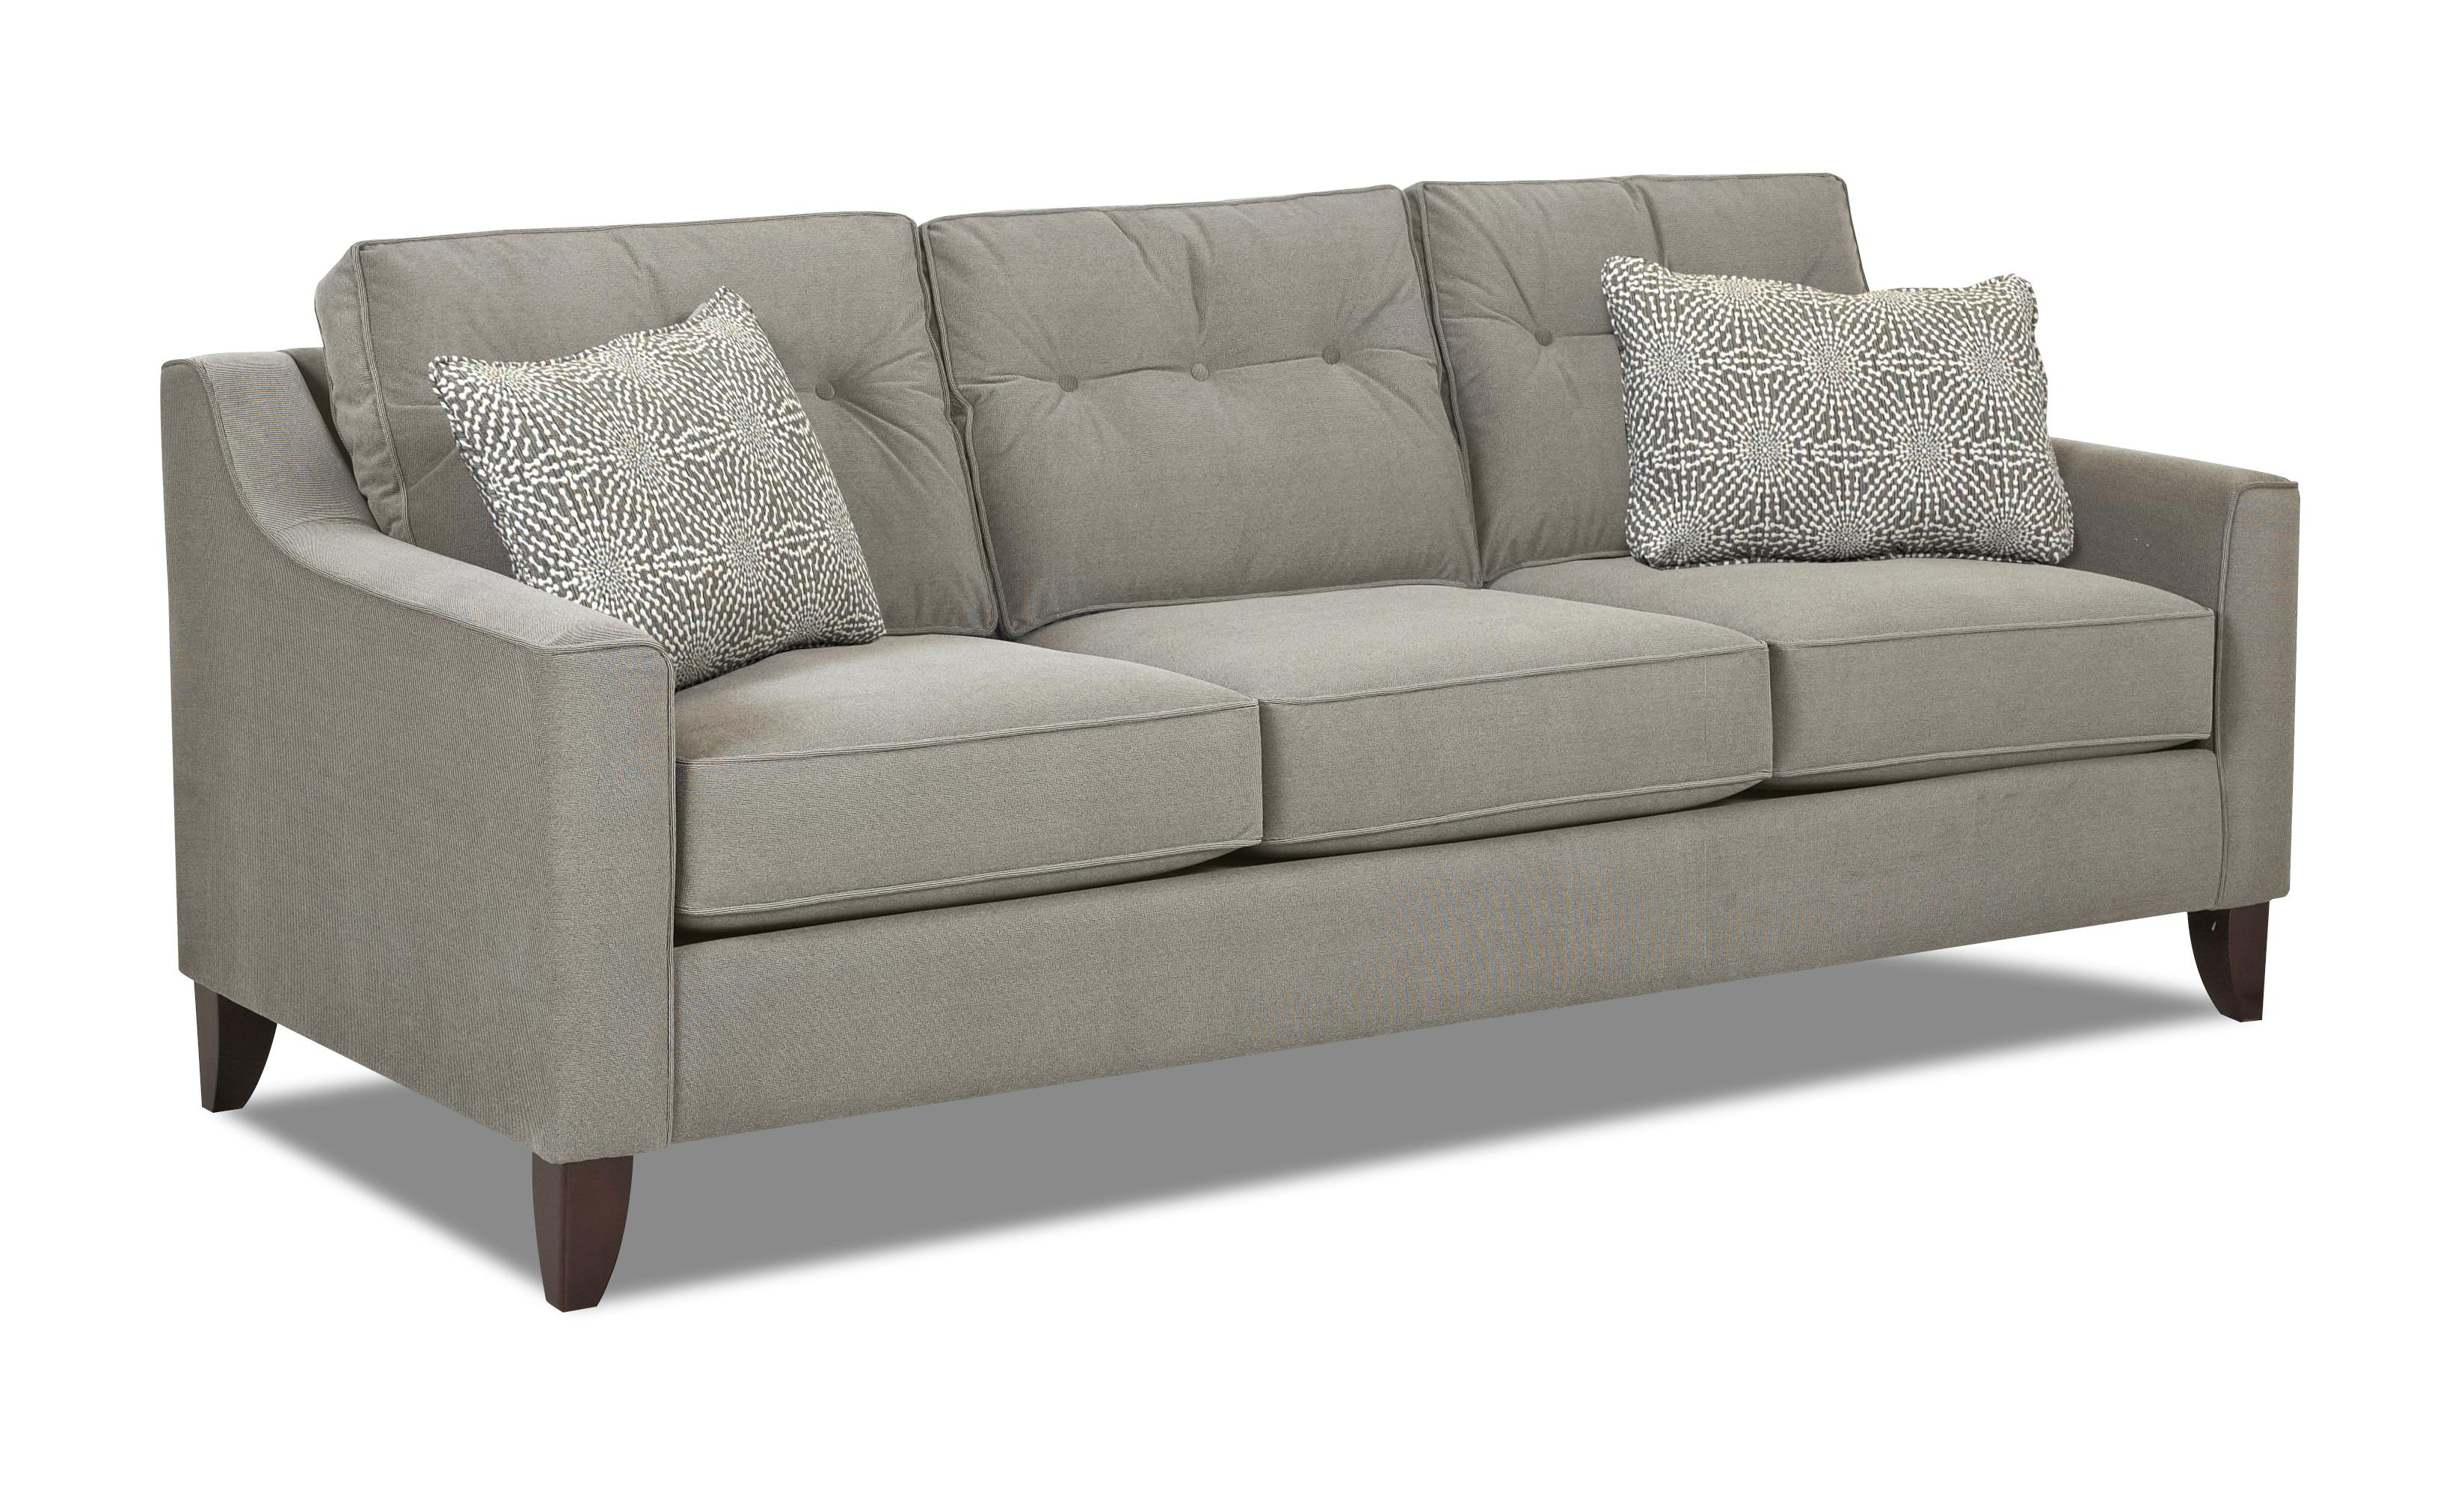 Mid century modern style sofa with tufted cushions by for Modern style sofa